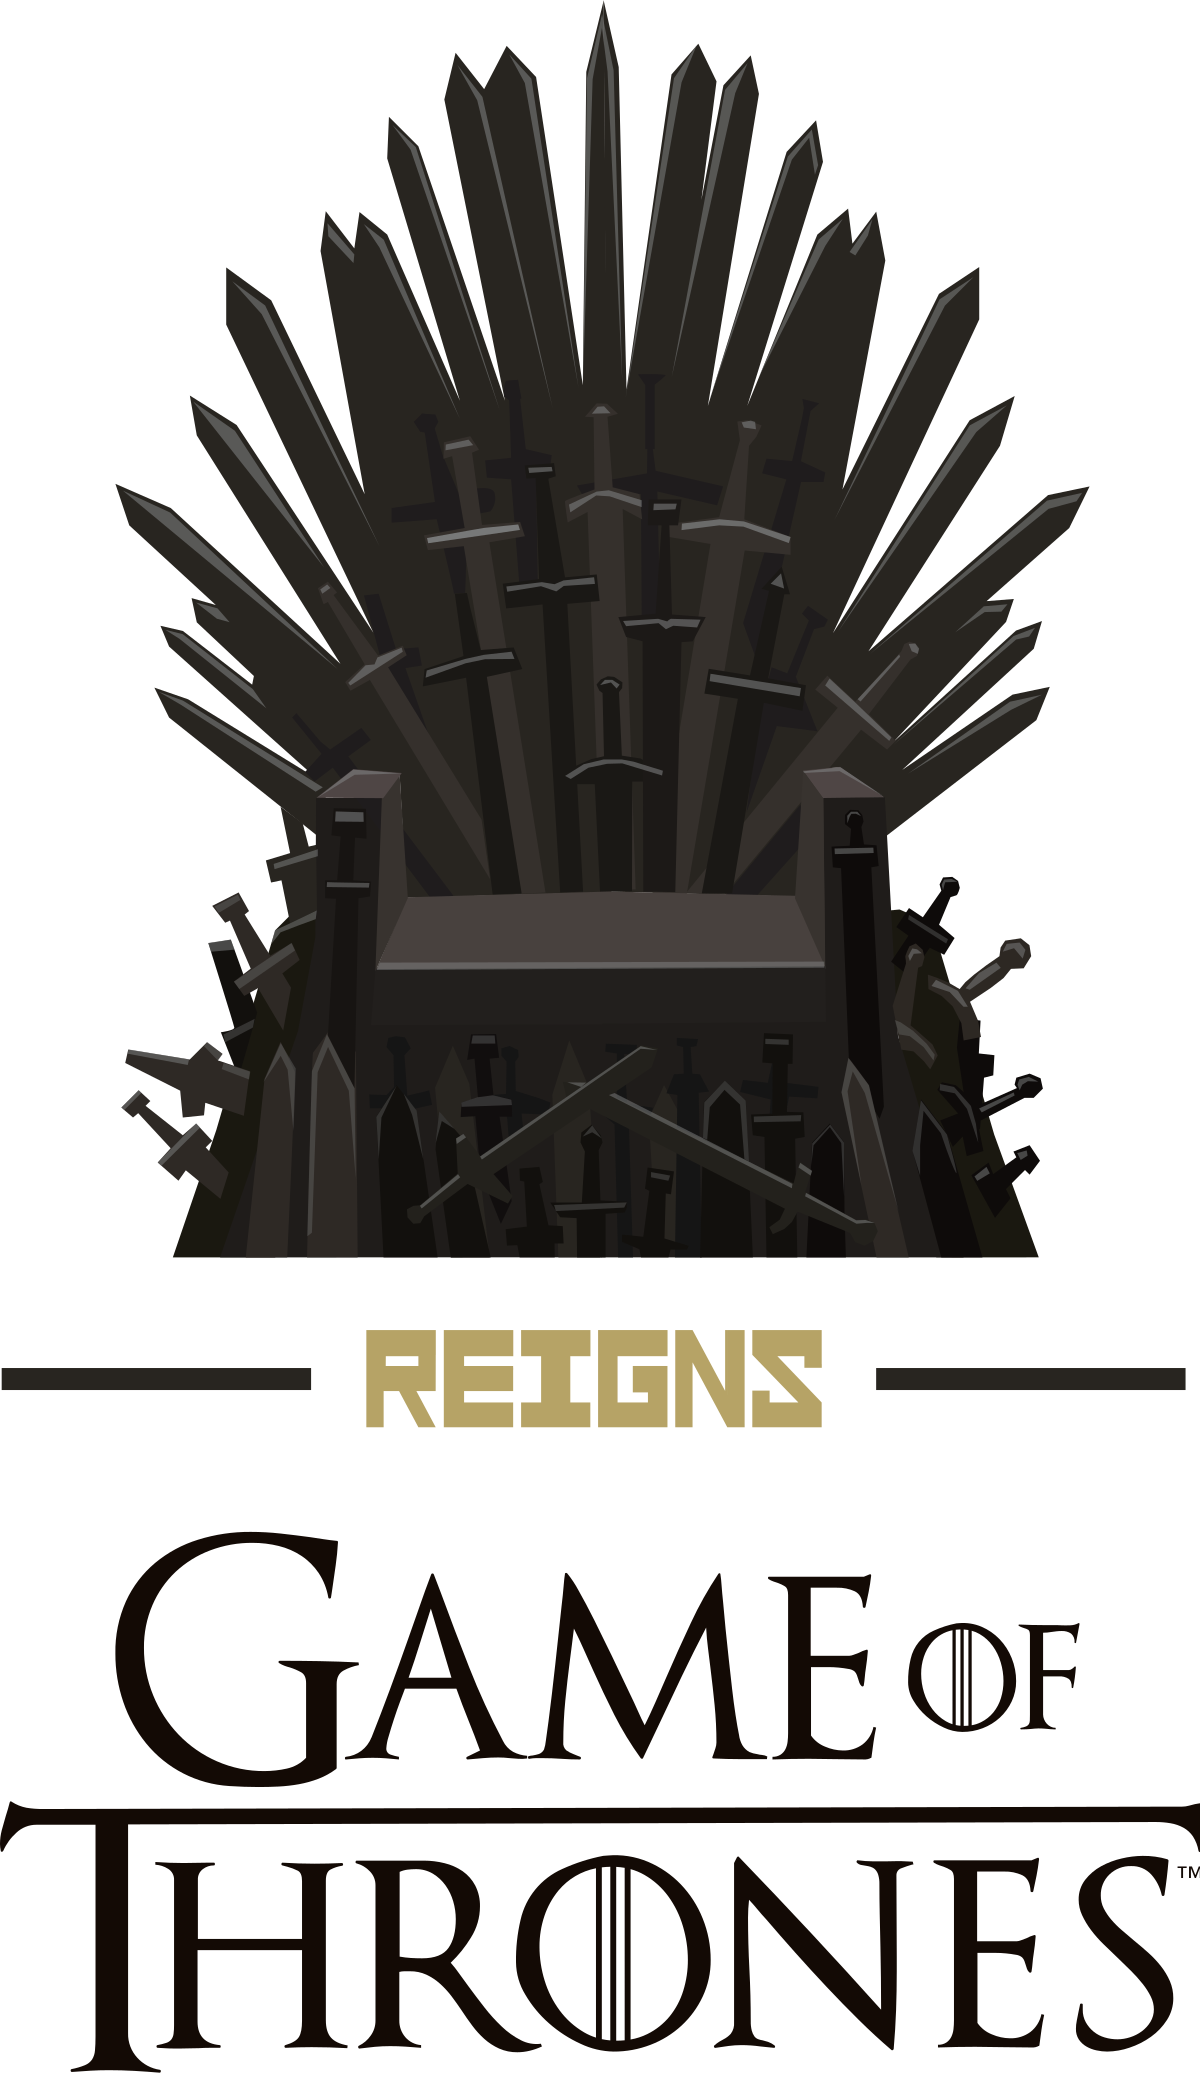 Game of thrones crow png. Reigns wikipedia